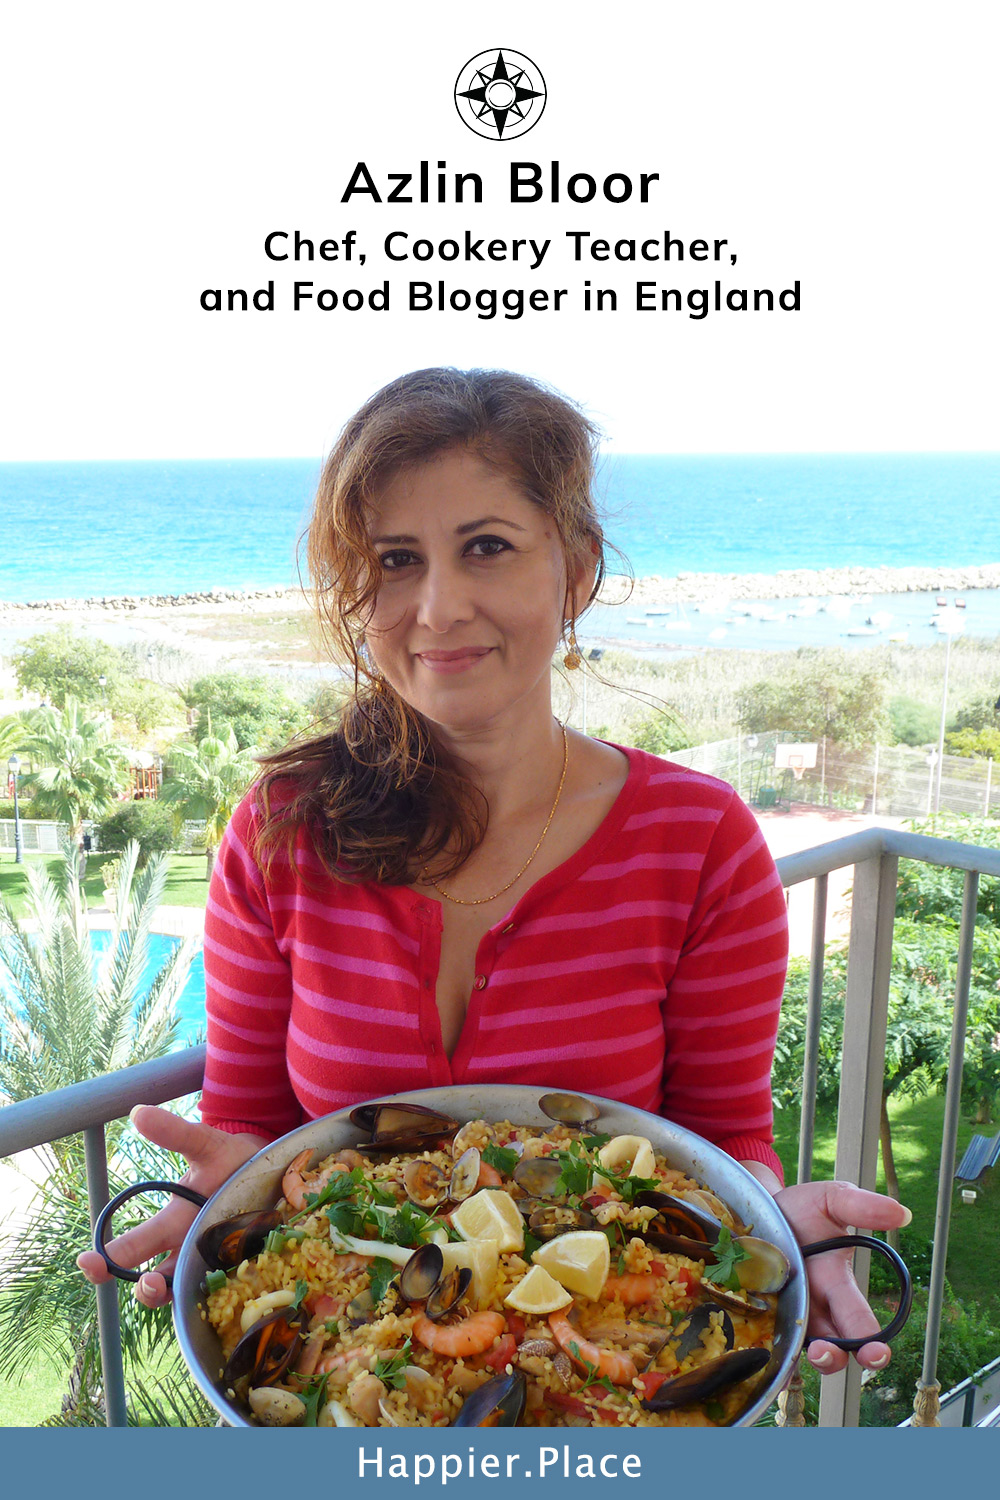 Azlin Bloor: Chef, Cookery Teacher, and Food Blogger (England)